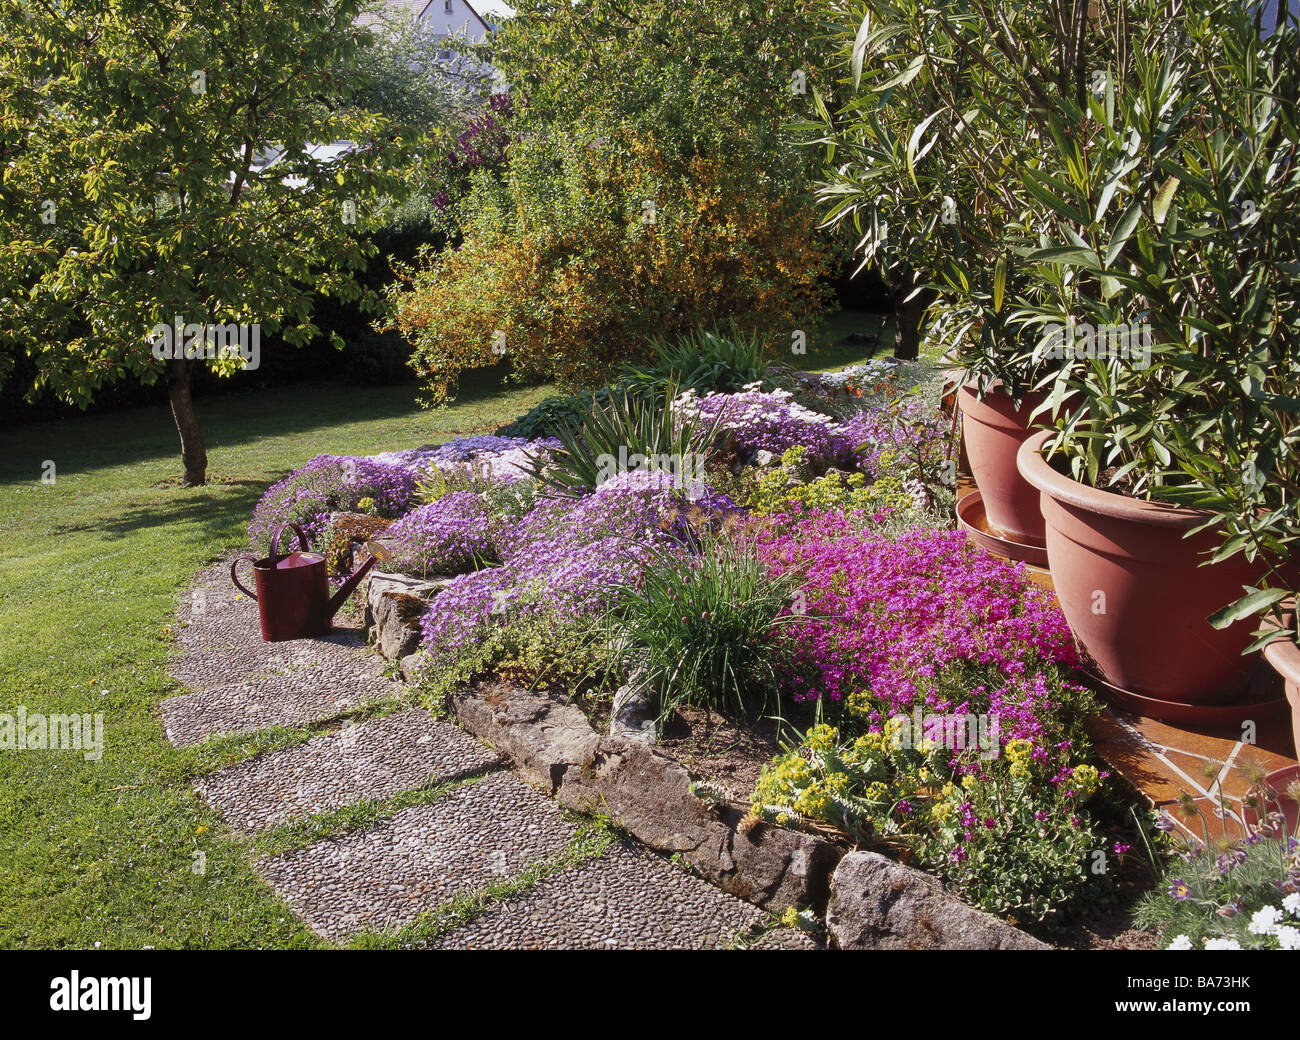 Garden Flower Bed Rockery Flowers Way Meadow Summers Terrace Lawns Trees  Shrubs Plate Way Bed Plants Ornament Plants Potted